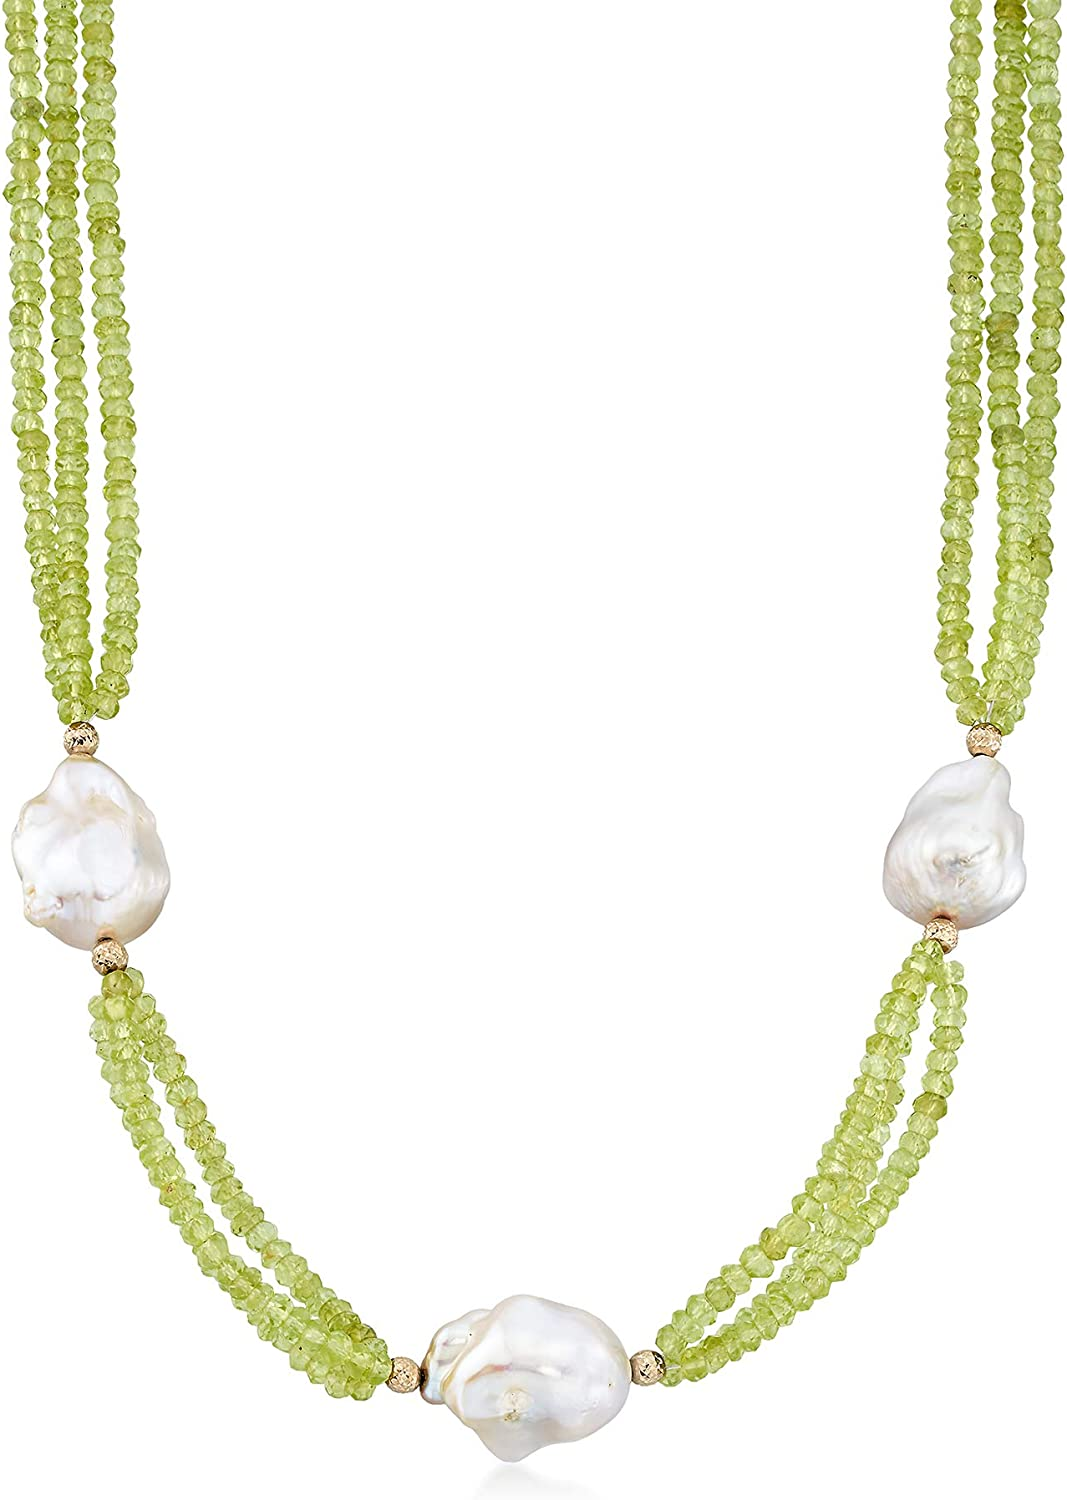 Ross-Simons Cultured Baroque Pearl and 70.00 ct. t.w. Peridot Triple-Strand Necklace